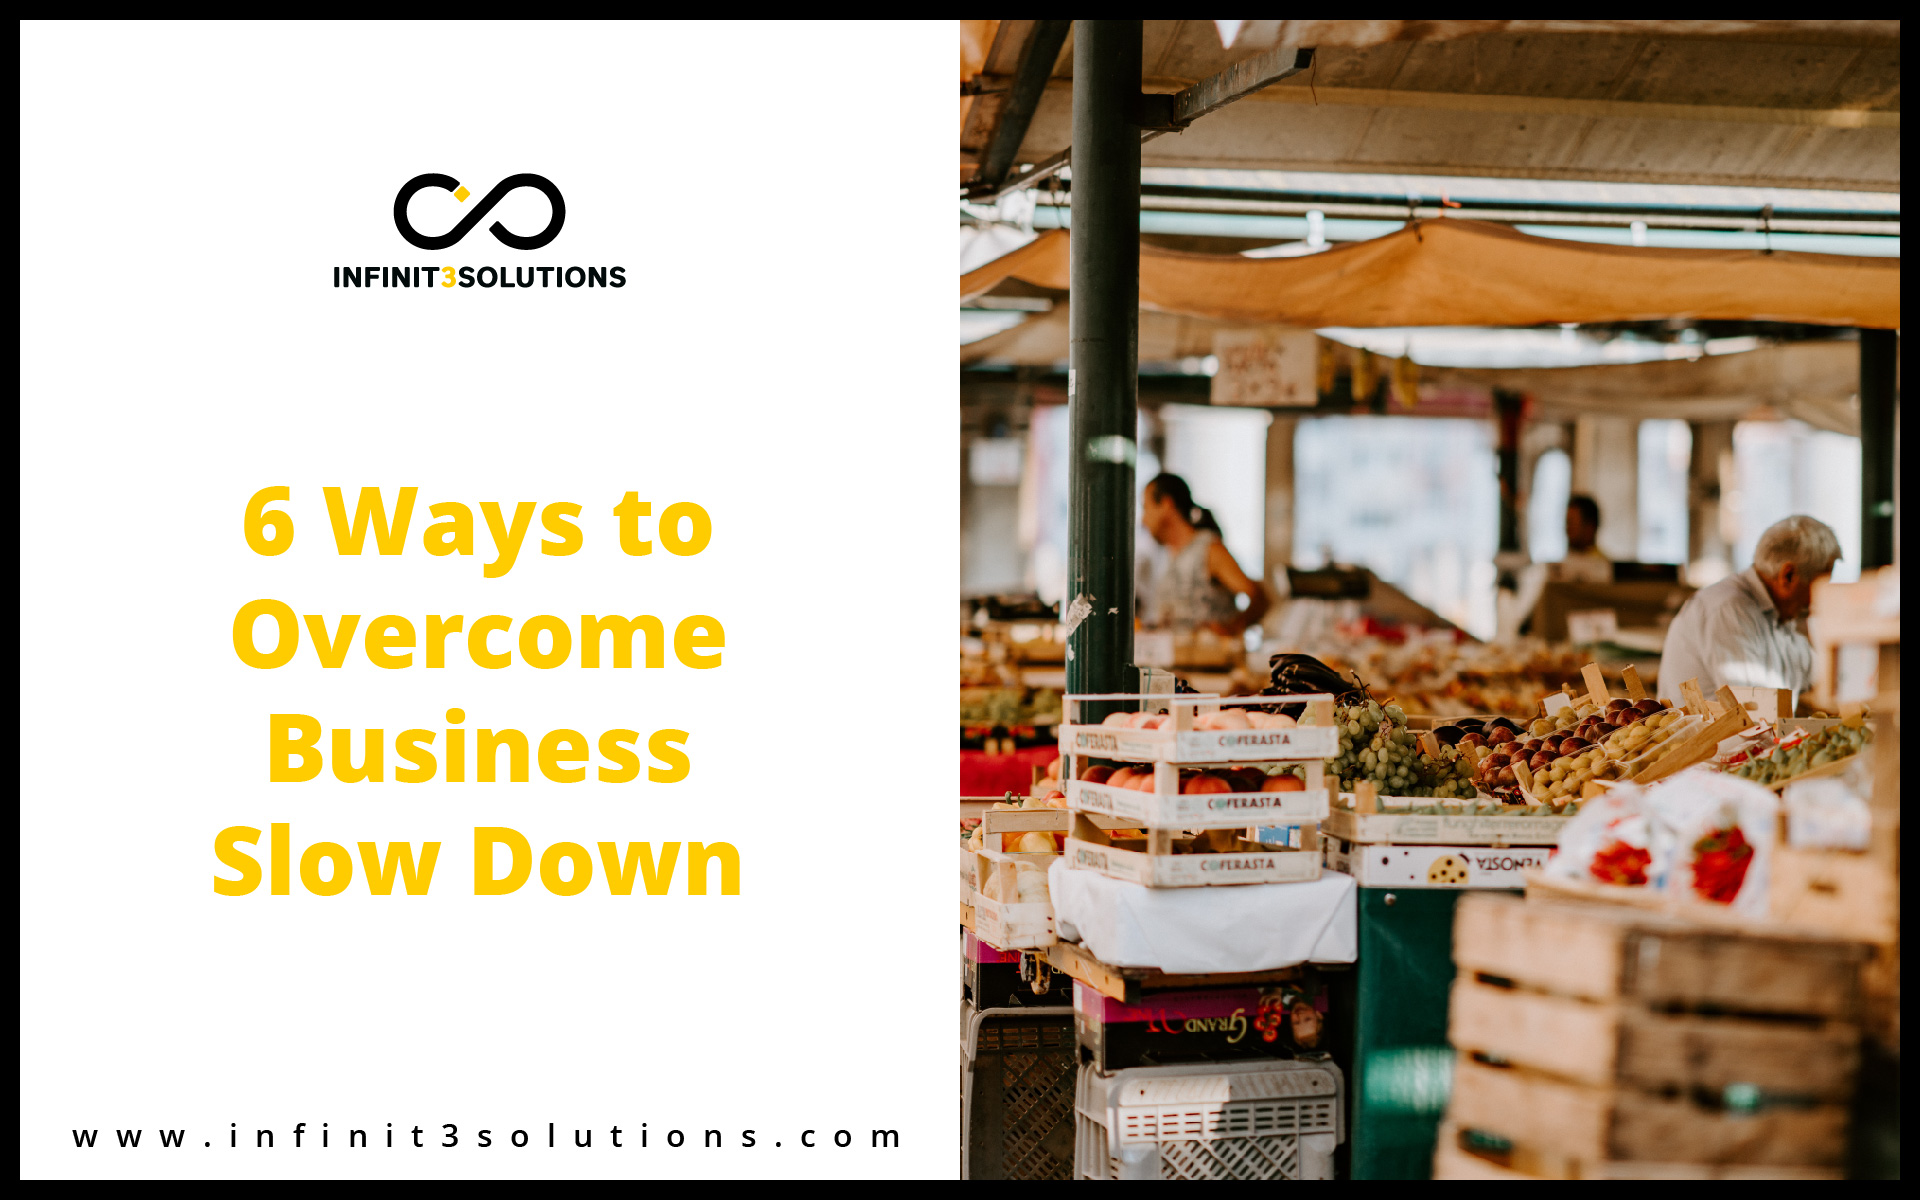 How to overcome business slow down